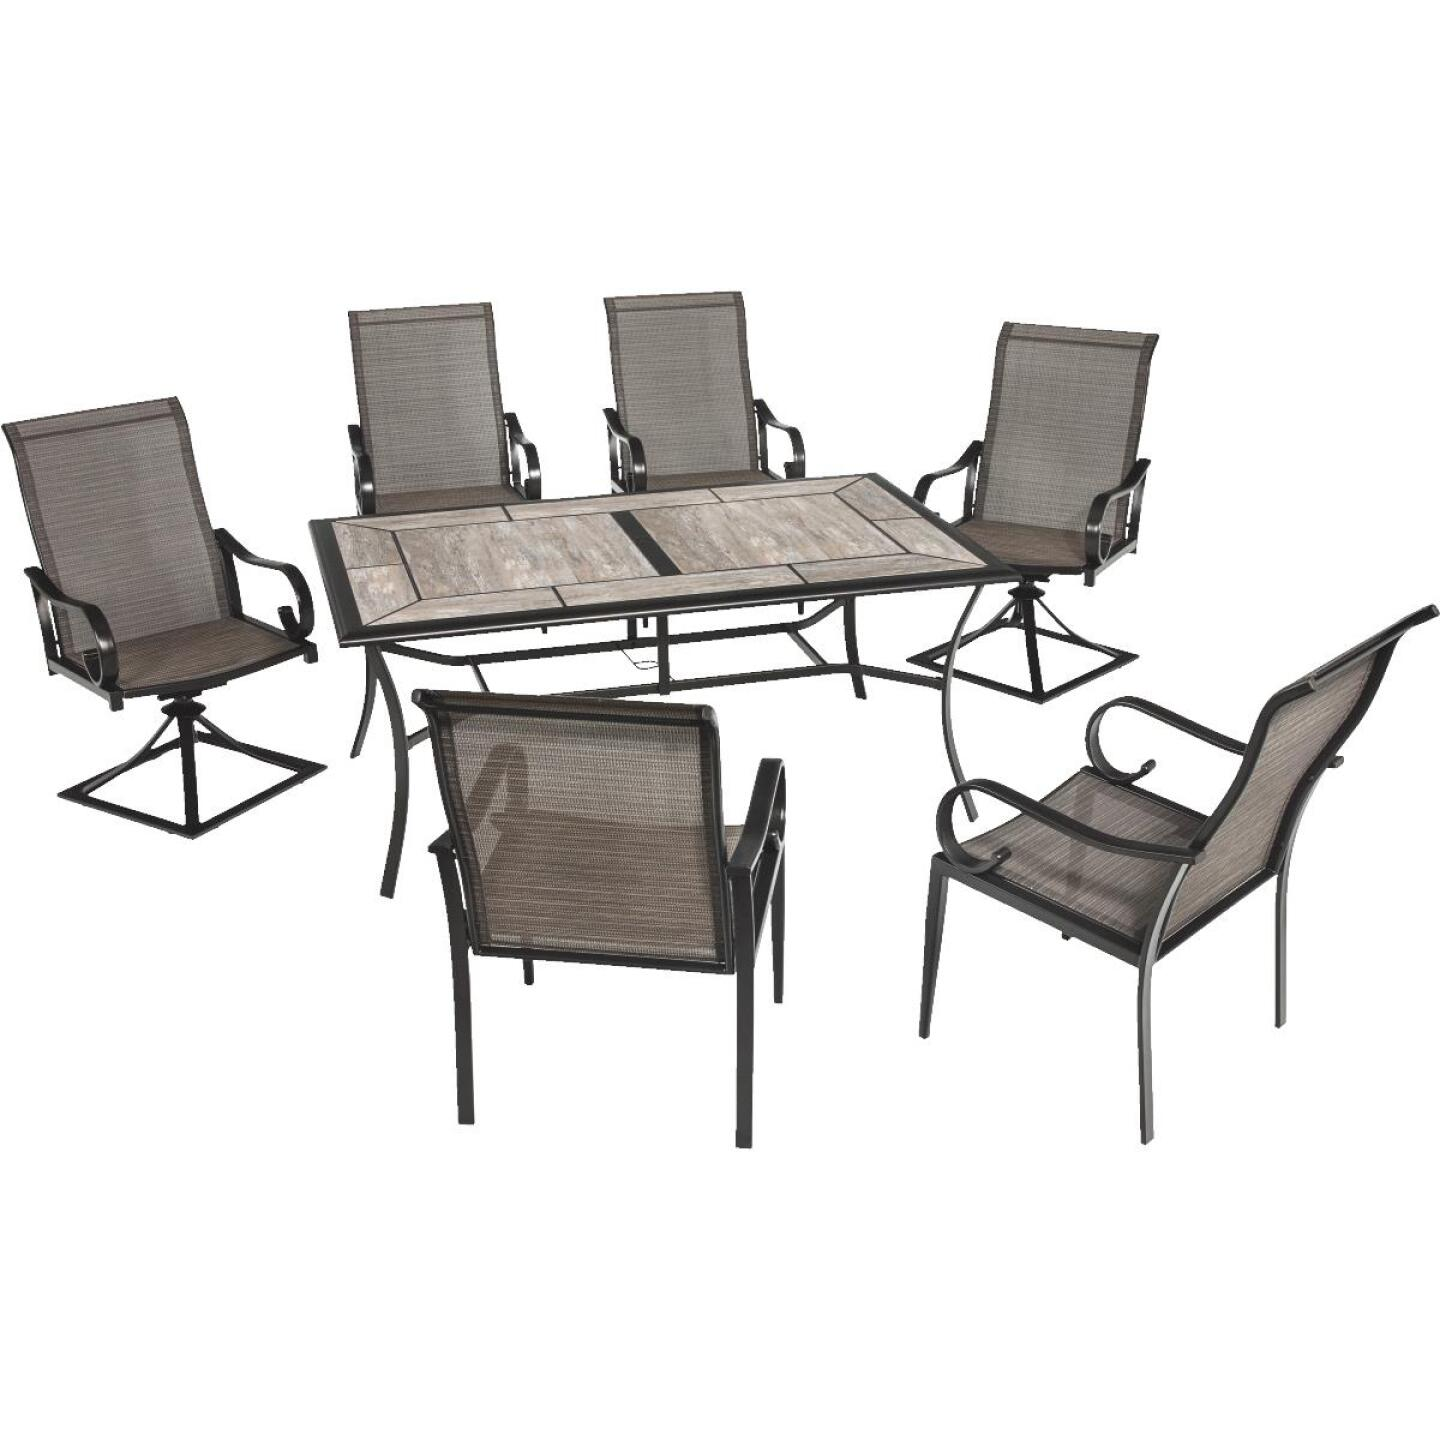 Outdoor Expressions Berkshire 7-Piece Dining Set Image 273